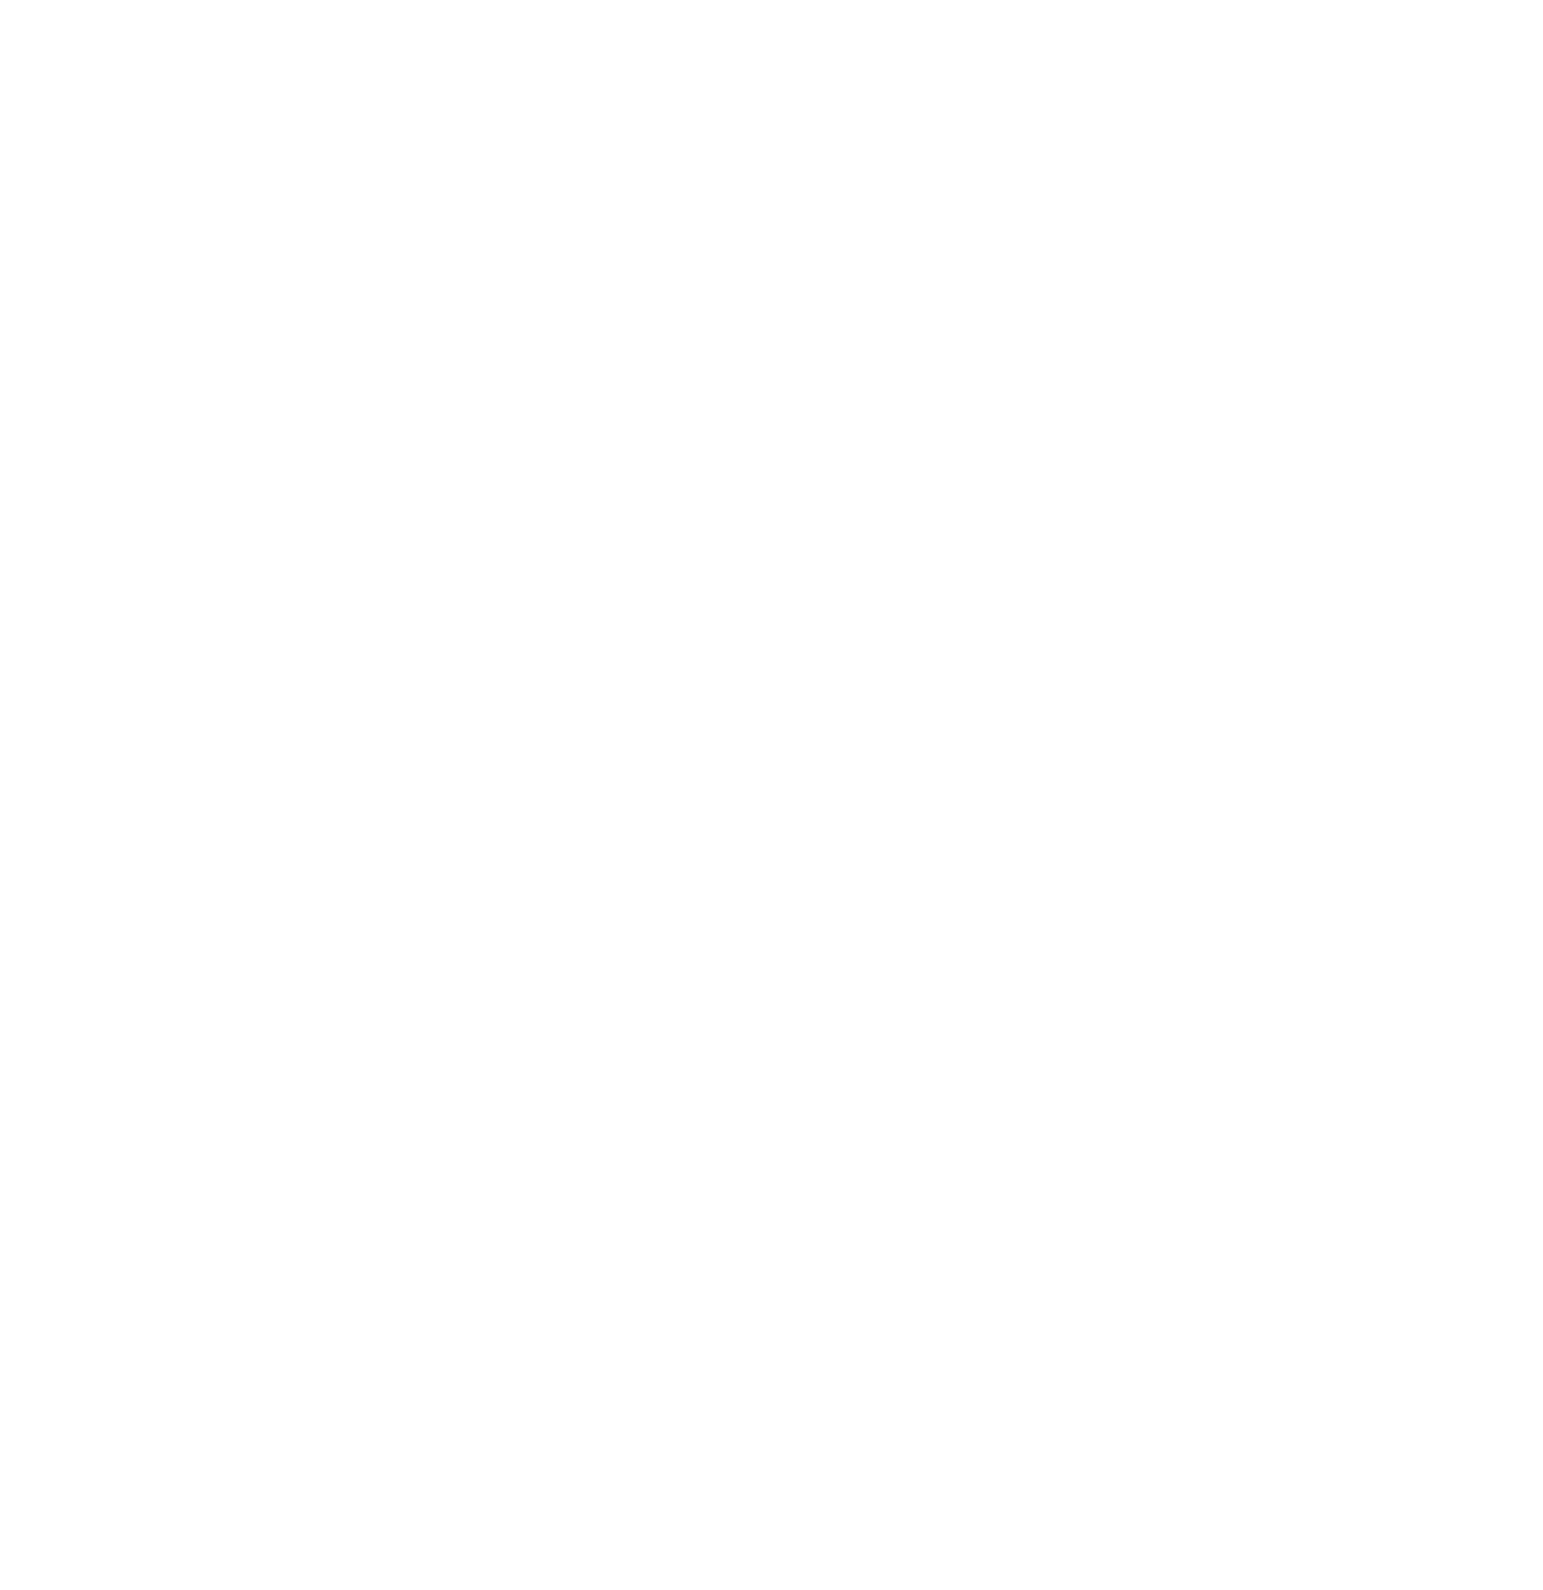 OZ WORLD